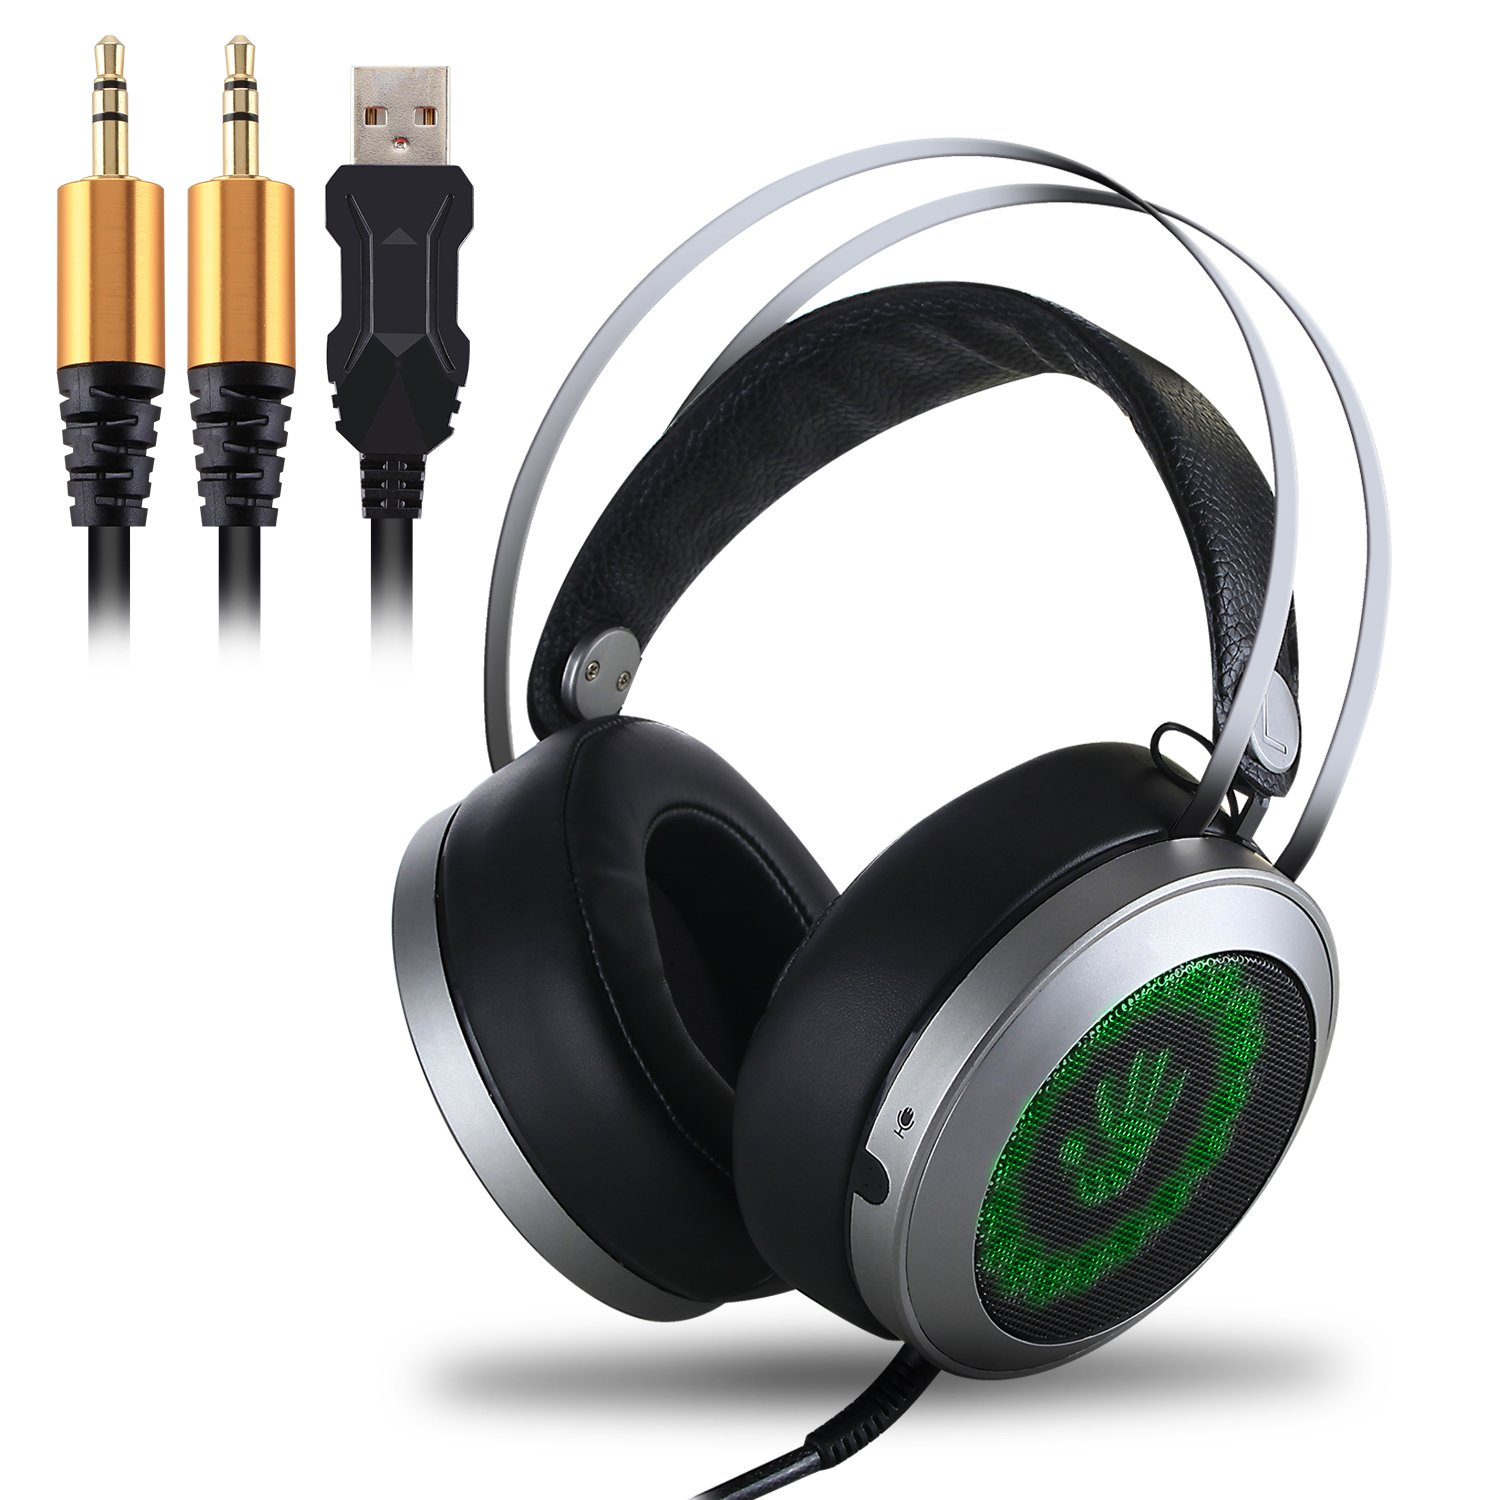 LED Gaming Headset, Etpark Color-Changing Breathing LED Light Wired Gaming  Headset PC Headset with Microphone 3.5mm Stereo Over-ear Headphones for PC  Laptop ...